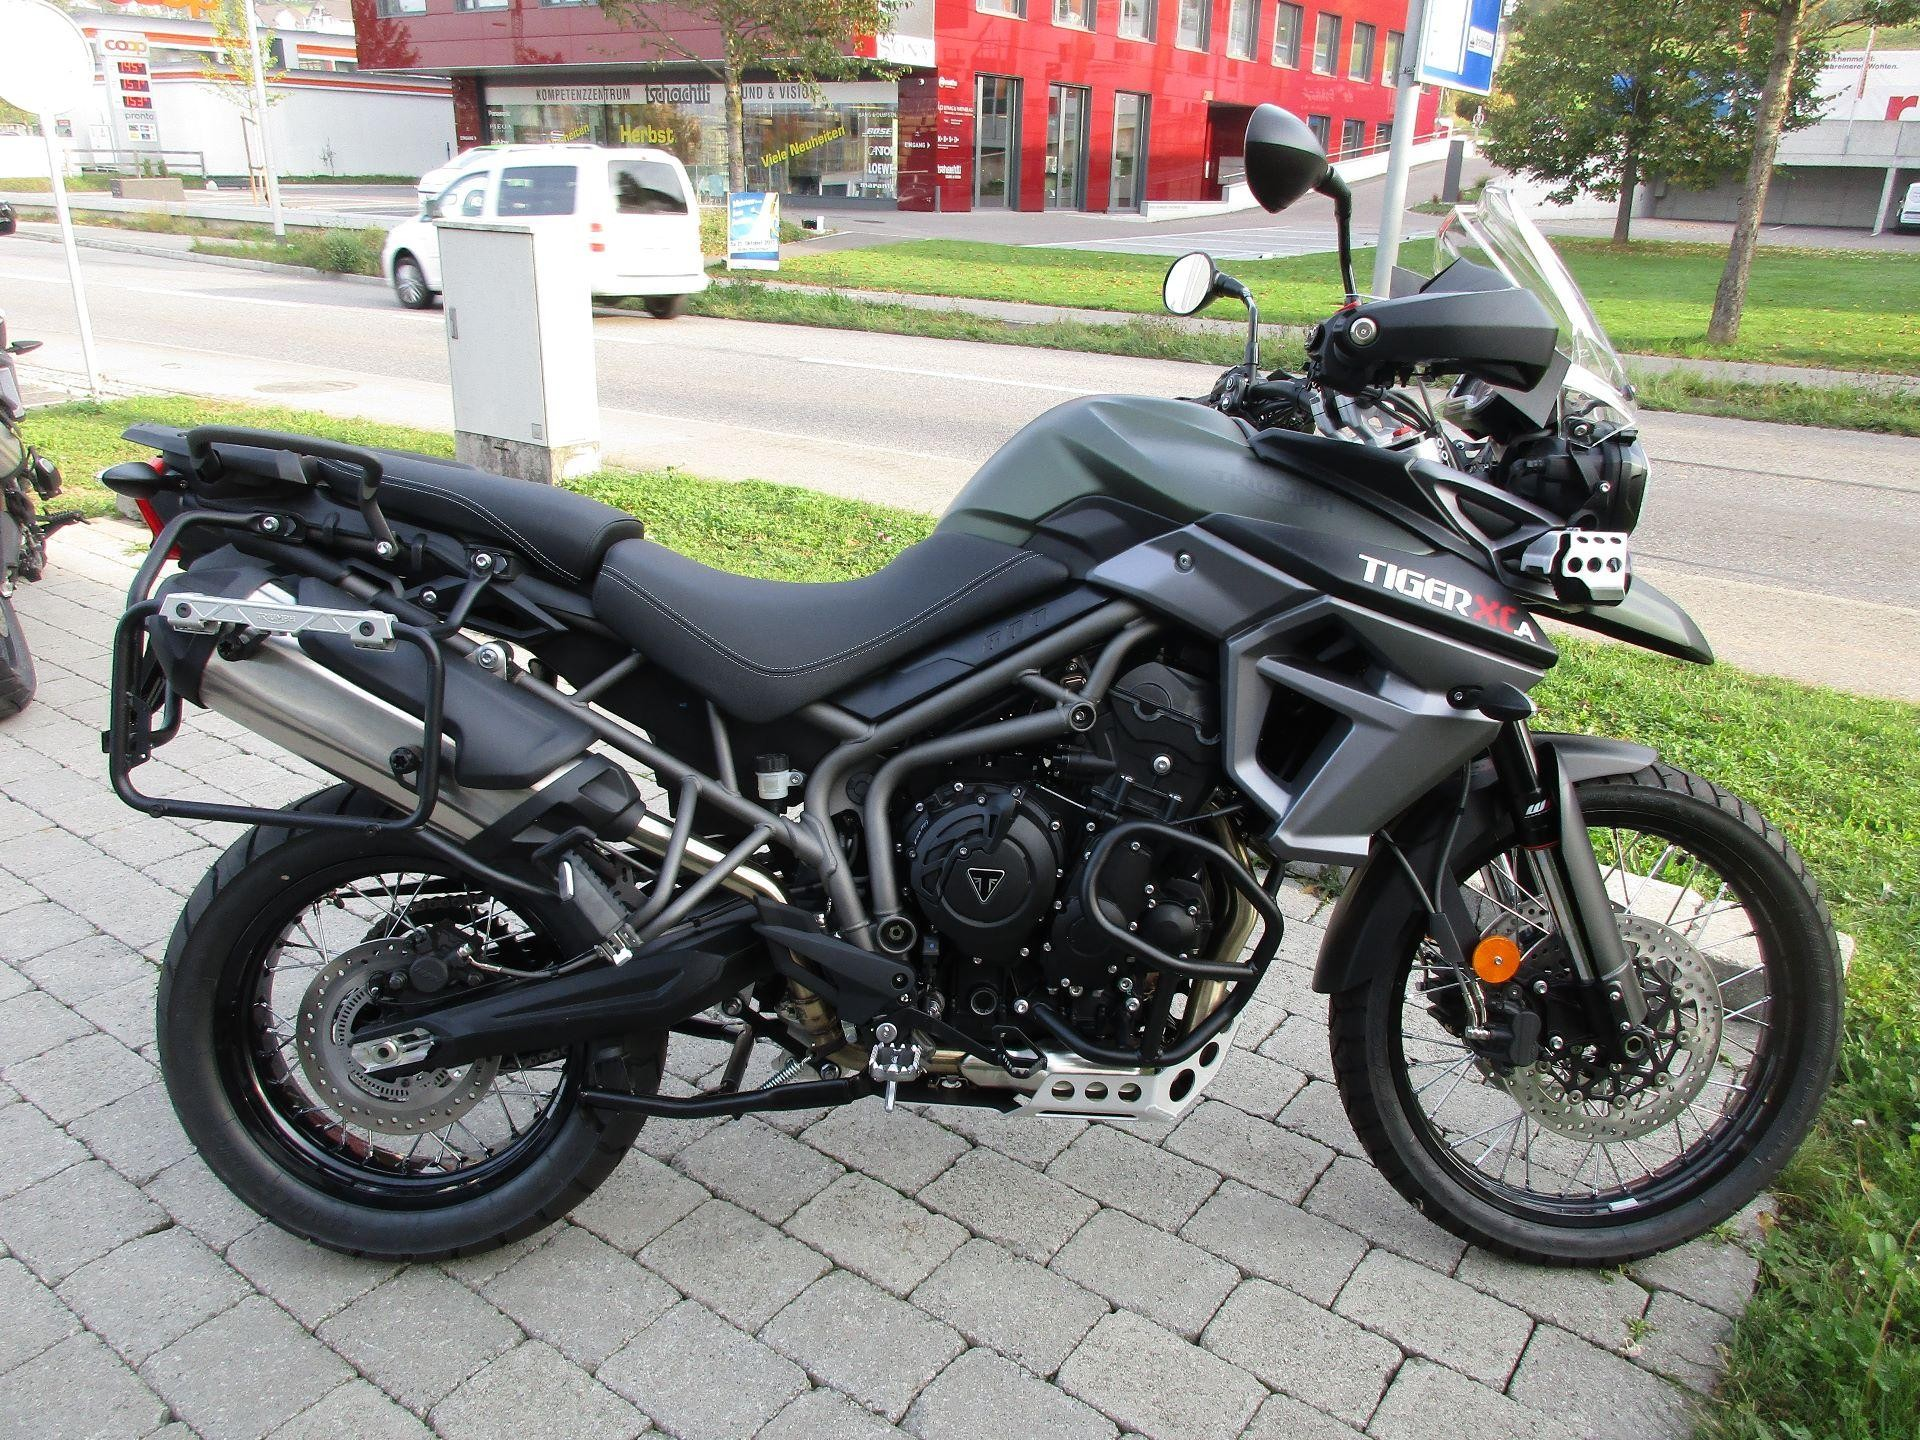 moto neuve acheter triumph tiger 800 xca abs touring motoria gmbh wohlen. Black Bedroom Furniture Sets. Home Design Ideas